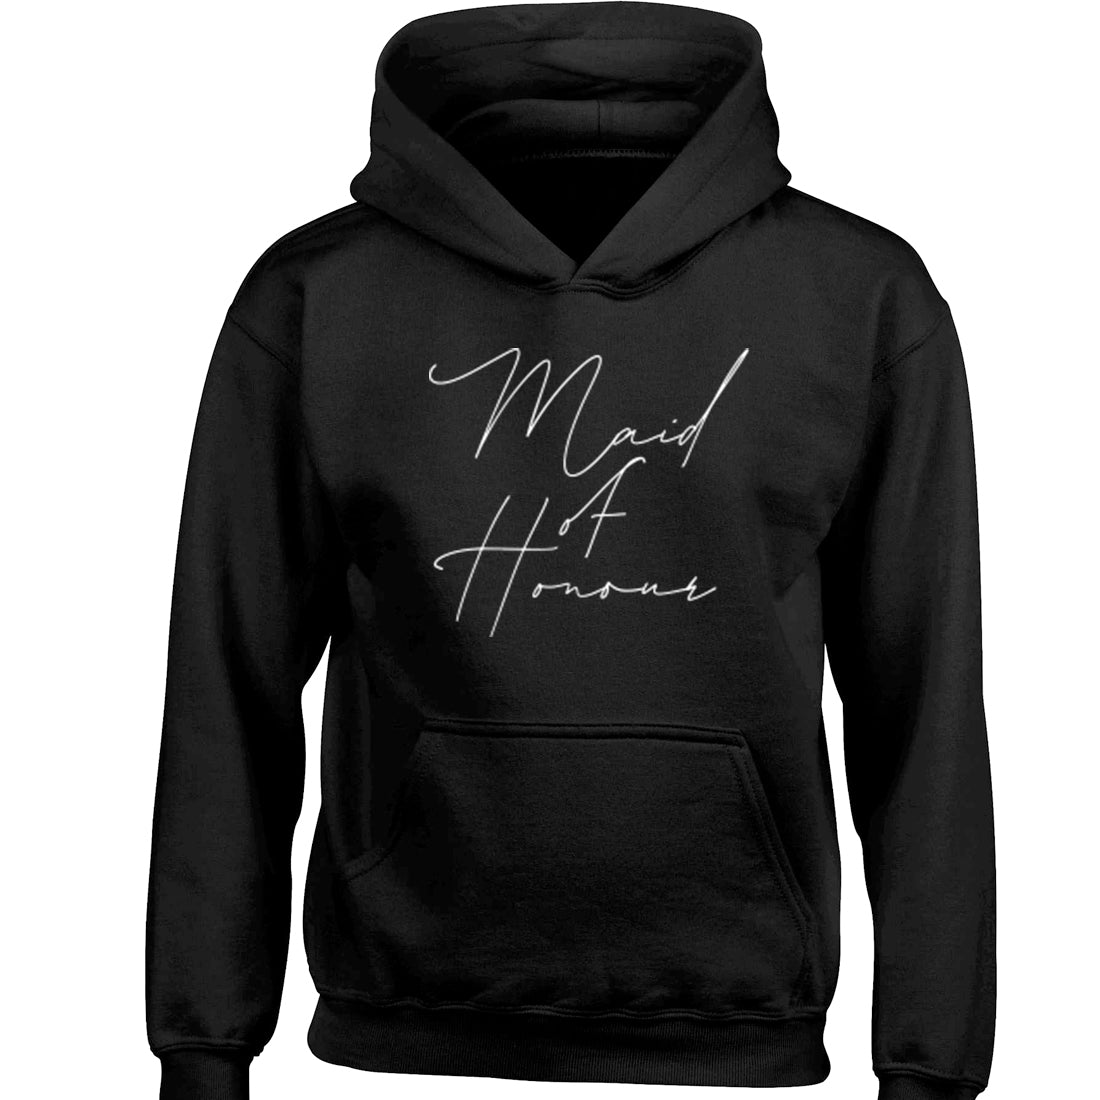 Maid Of Honour Childrens Ages 3/4-12/14 Unisex Hoodie K2374